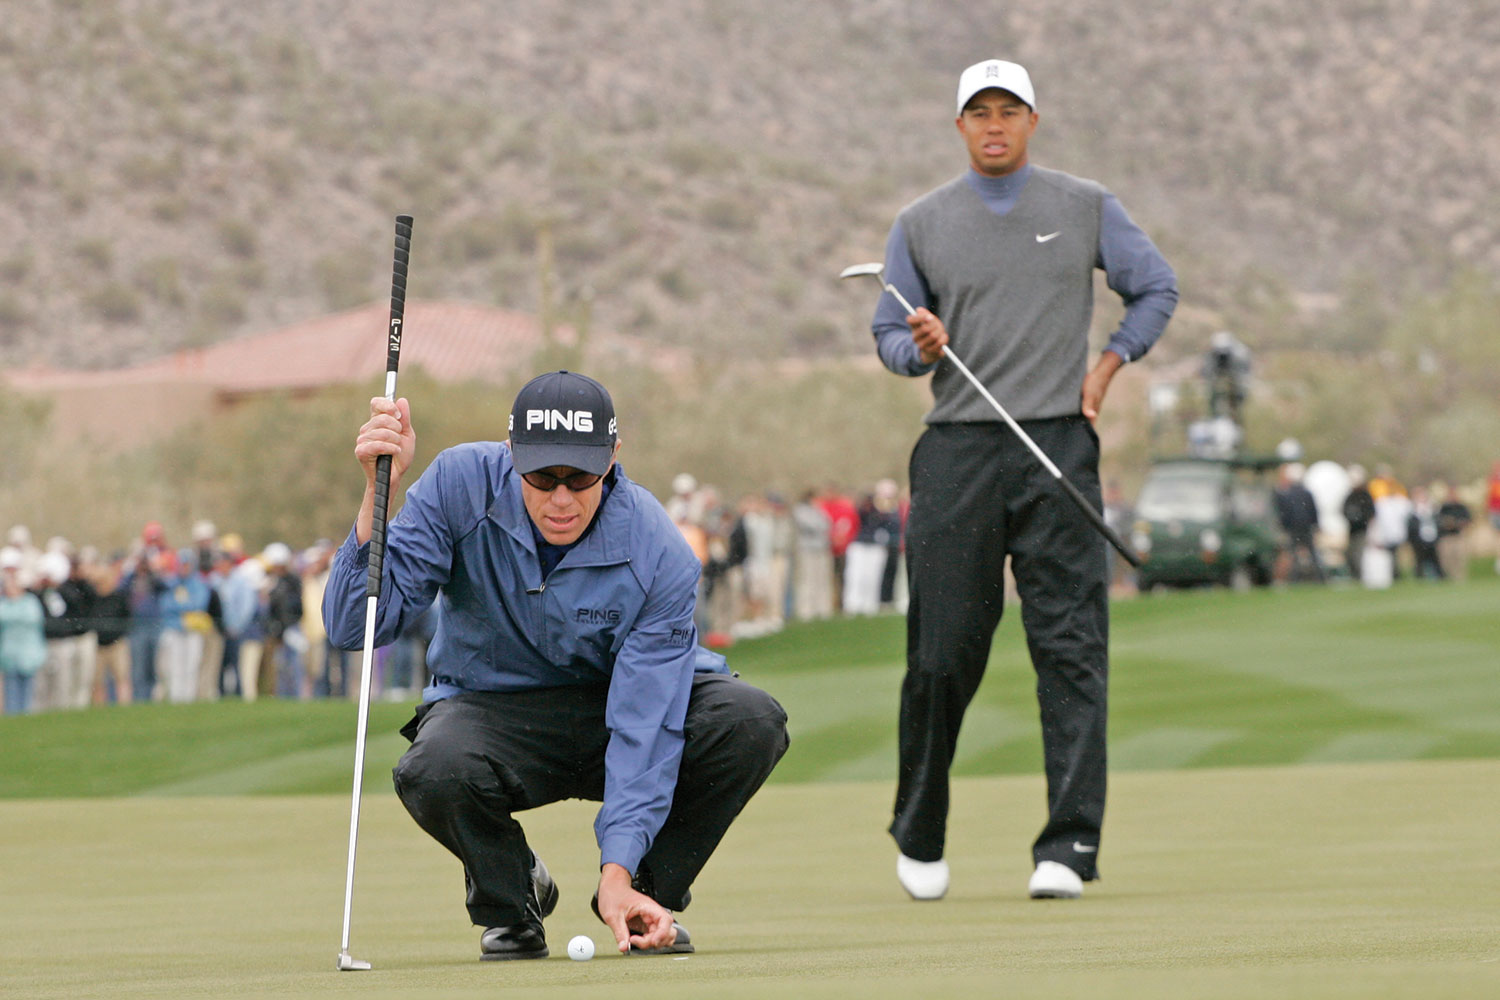 Beating Tiger Woods at the 2007 WGC-Matchplay was a triumph of grit over greatness.